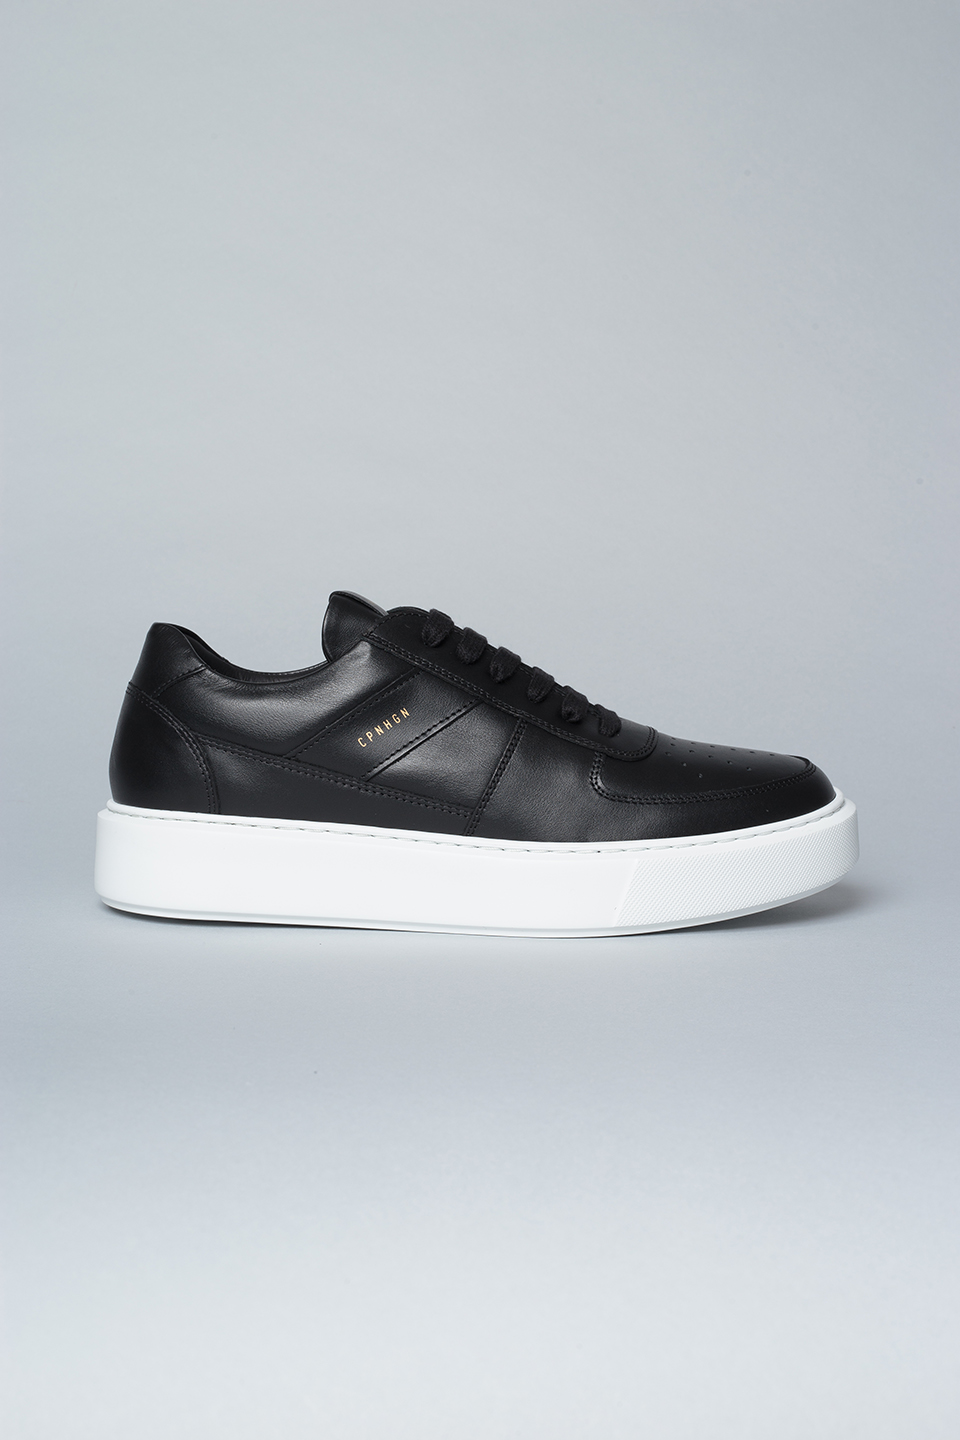 CPH152M vitello black - alternative 1